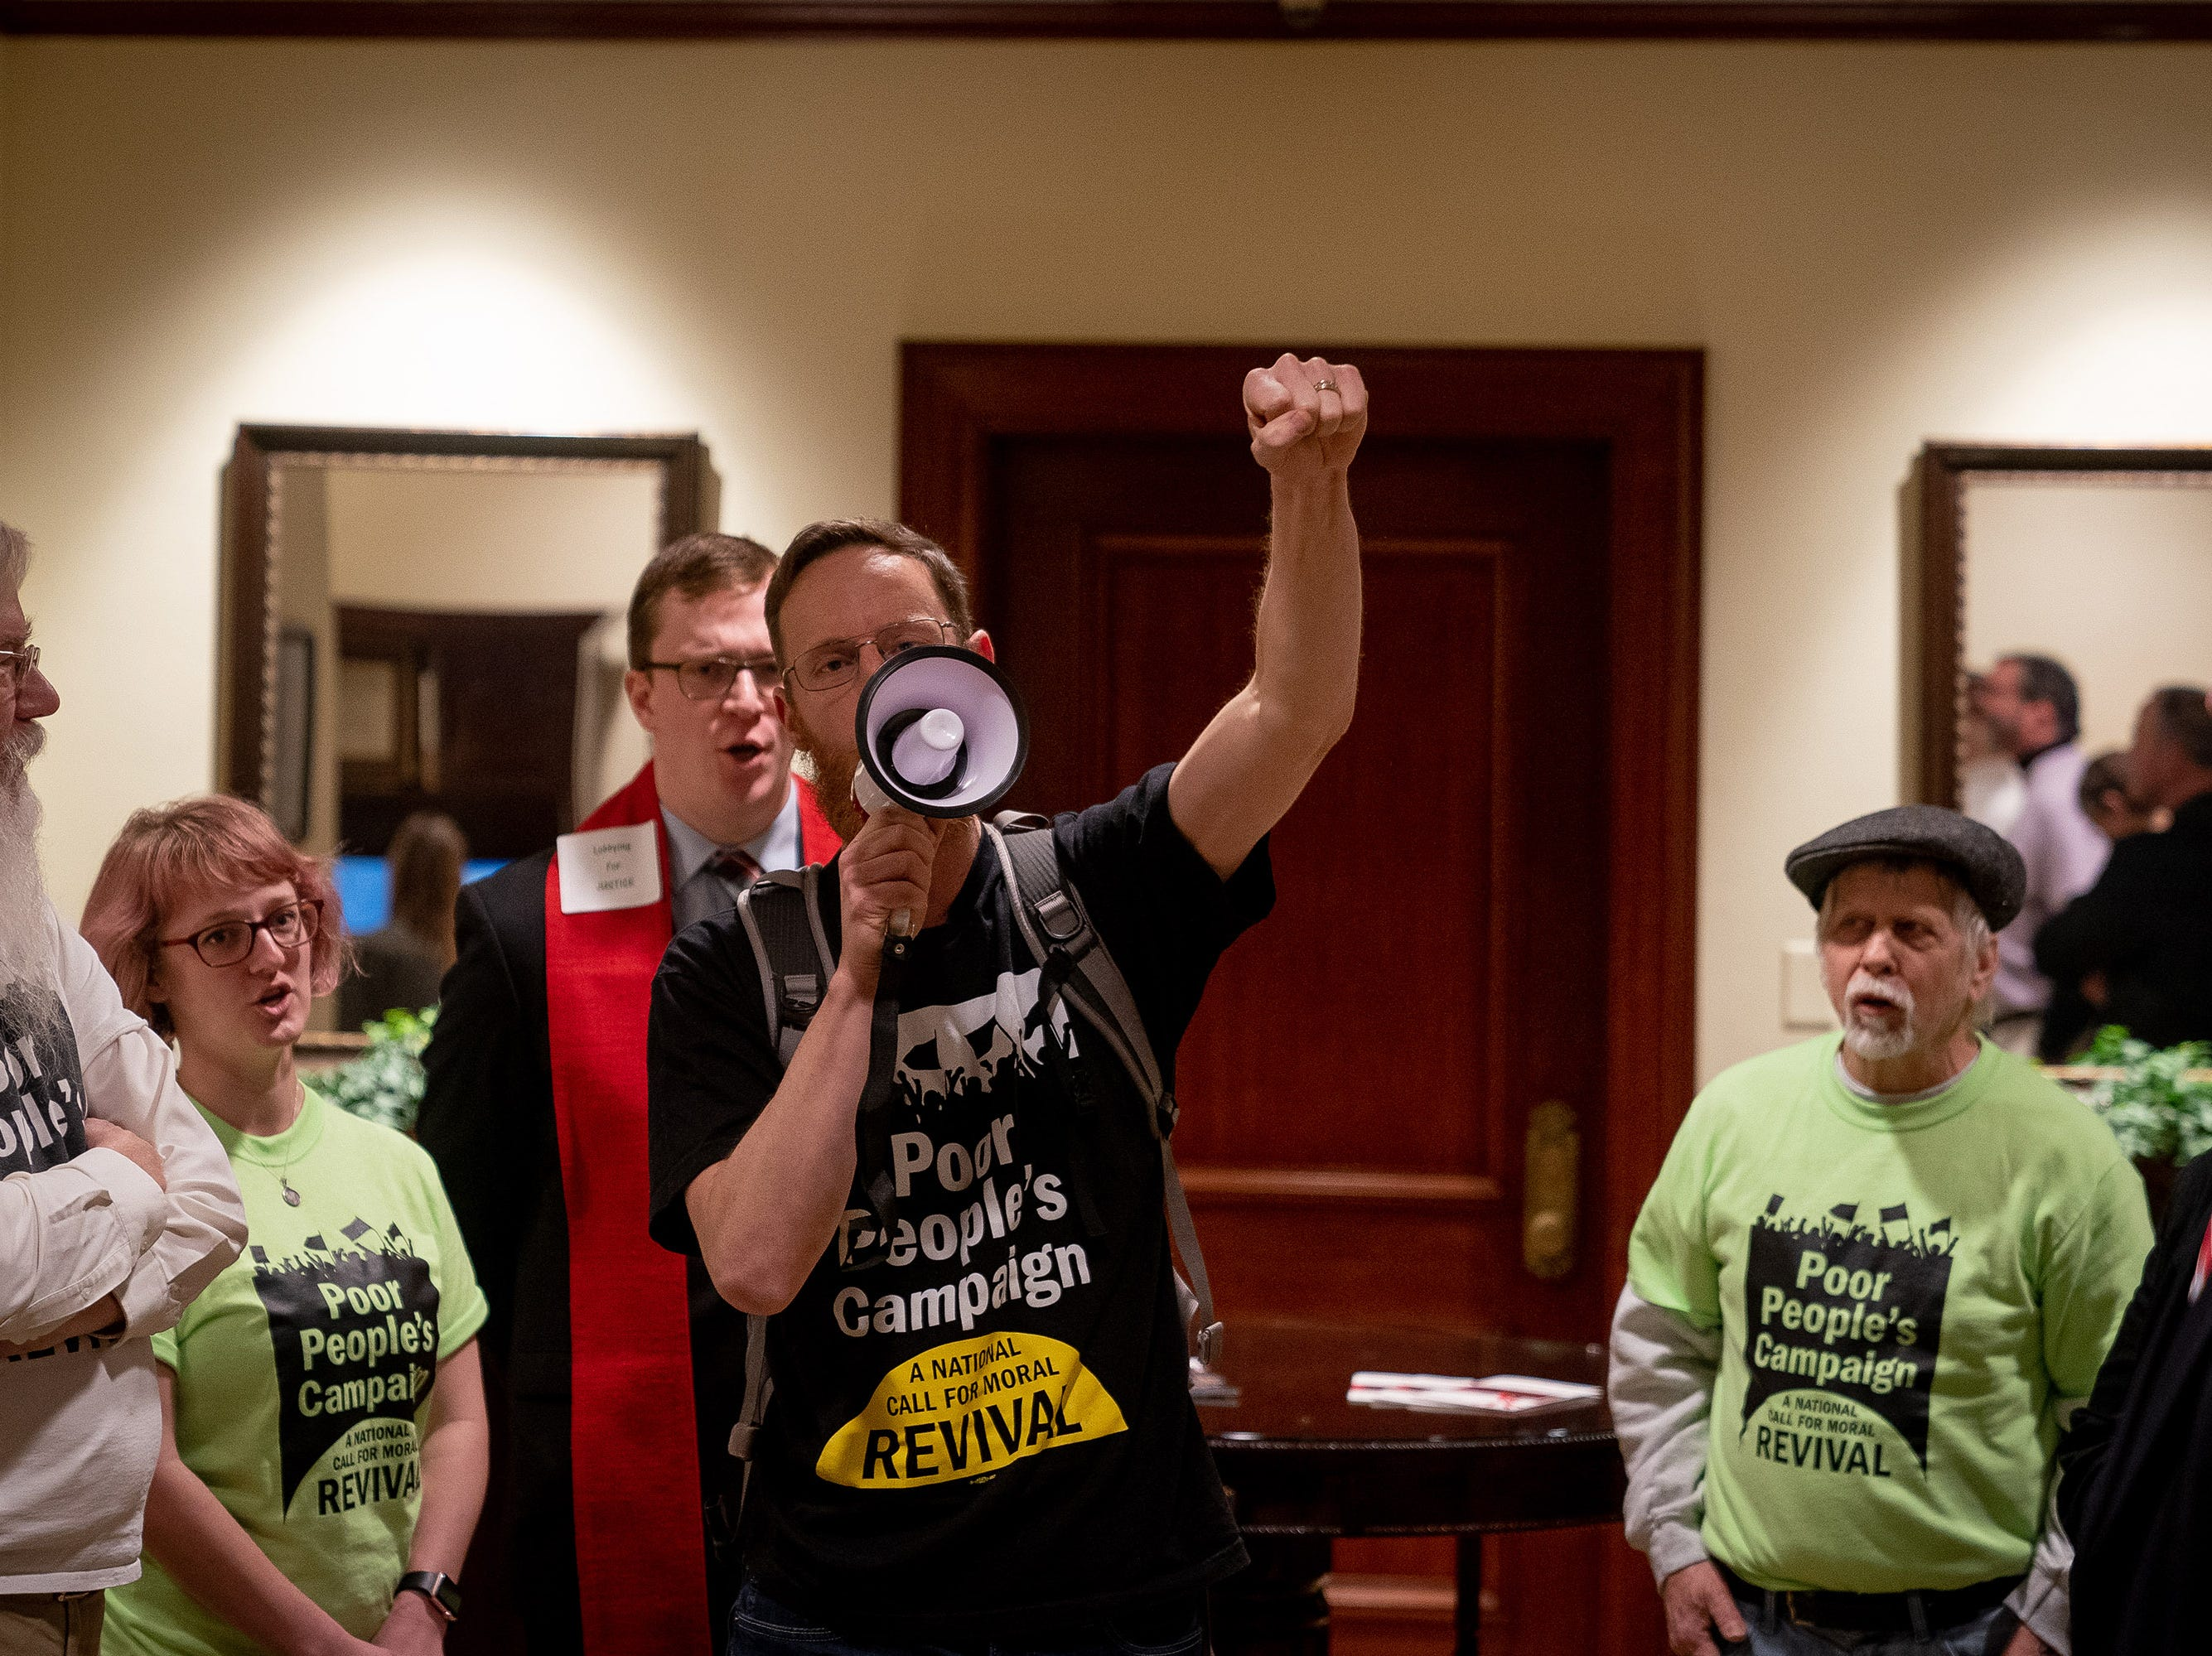 Members of the Kentucky's Poor People's Campaign gather and refuse to leave the office of Governor Matt Bevin in the Capitol building in Frankfort, Ky, Tuesday, Feb. 5, 2018.  The group left after the Governor agreed to meet with the group later that afternoon.